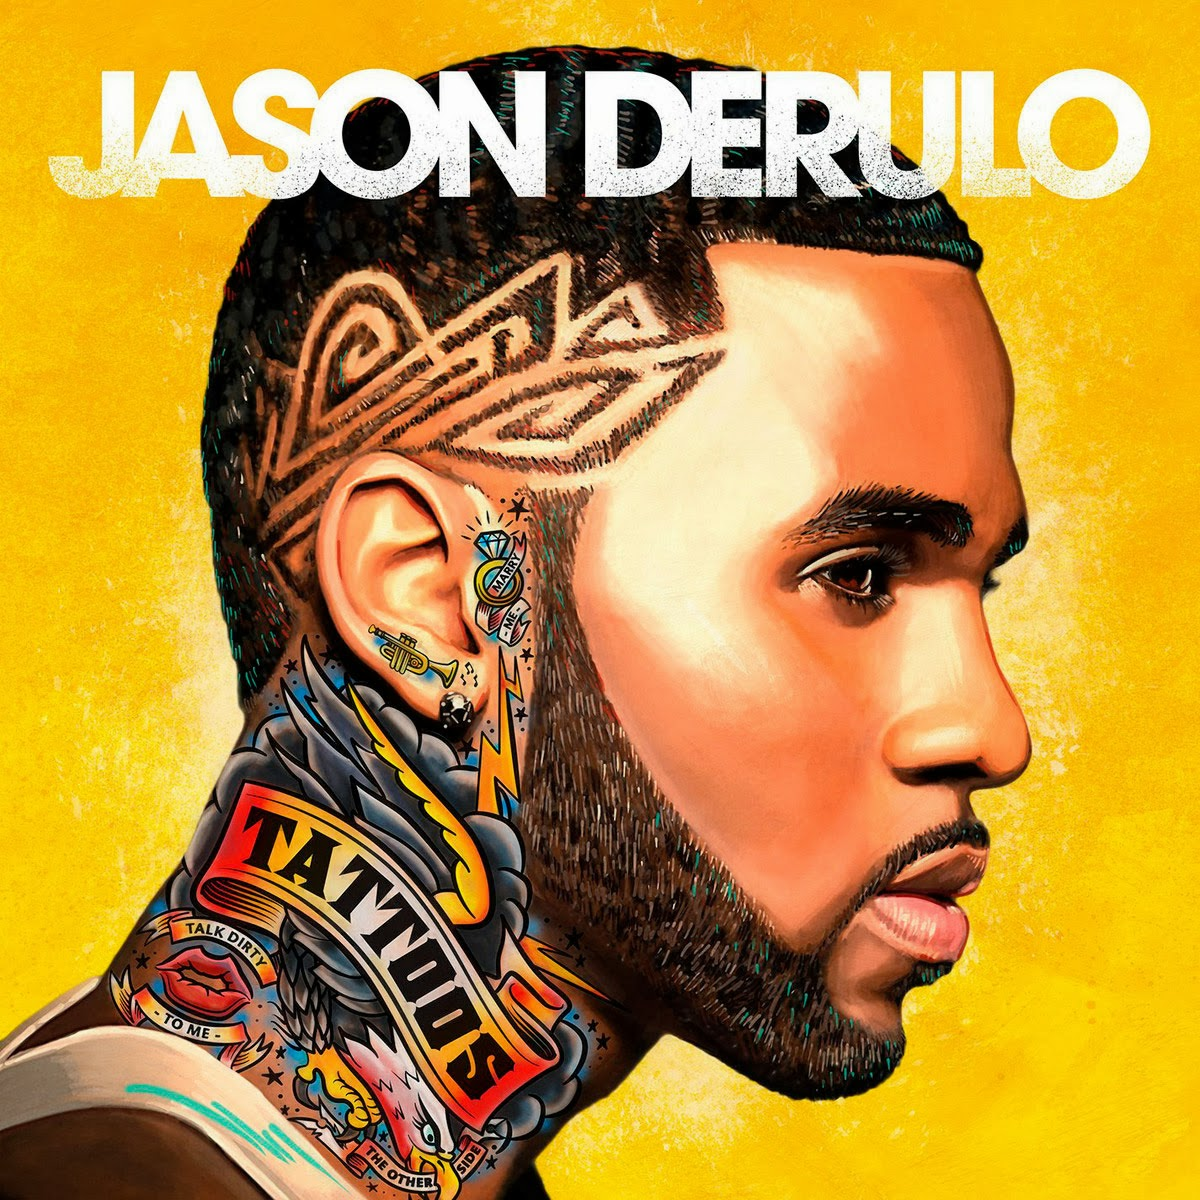 Jason Derulo - Tattoos (Deluxe Version) (2013)